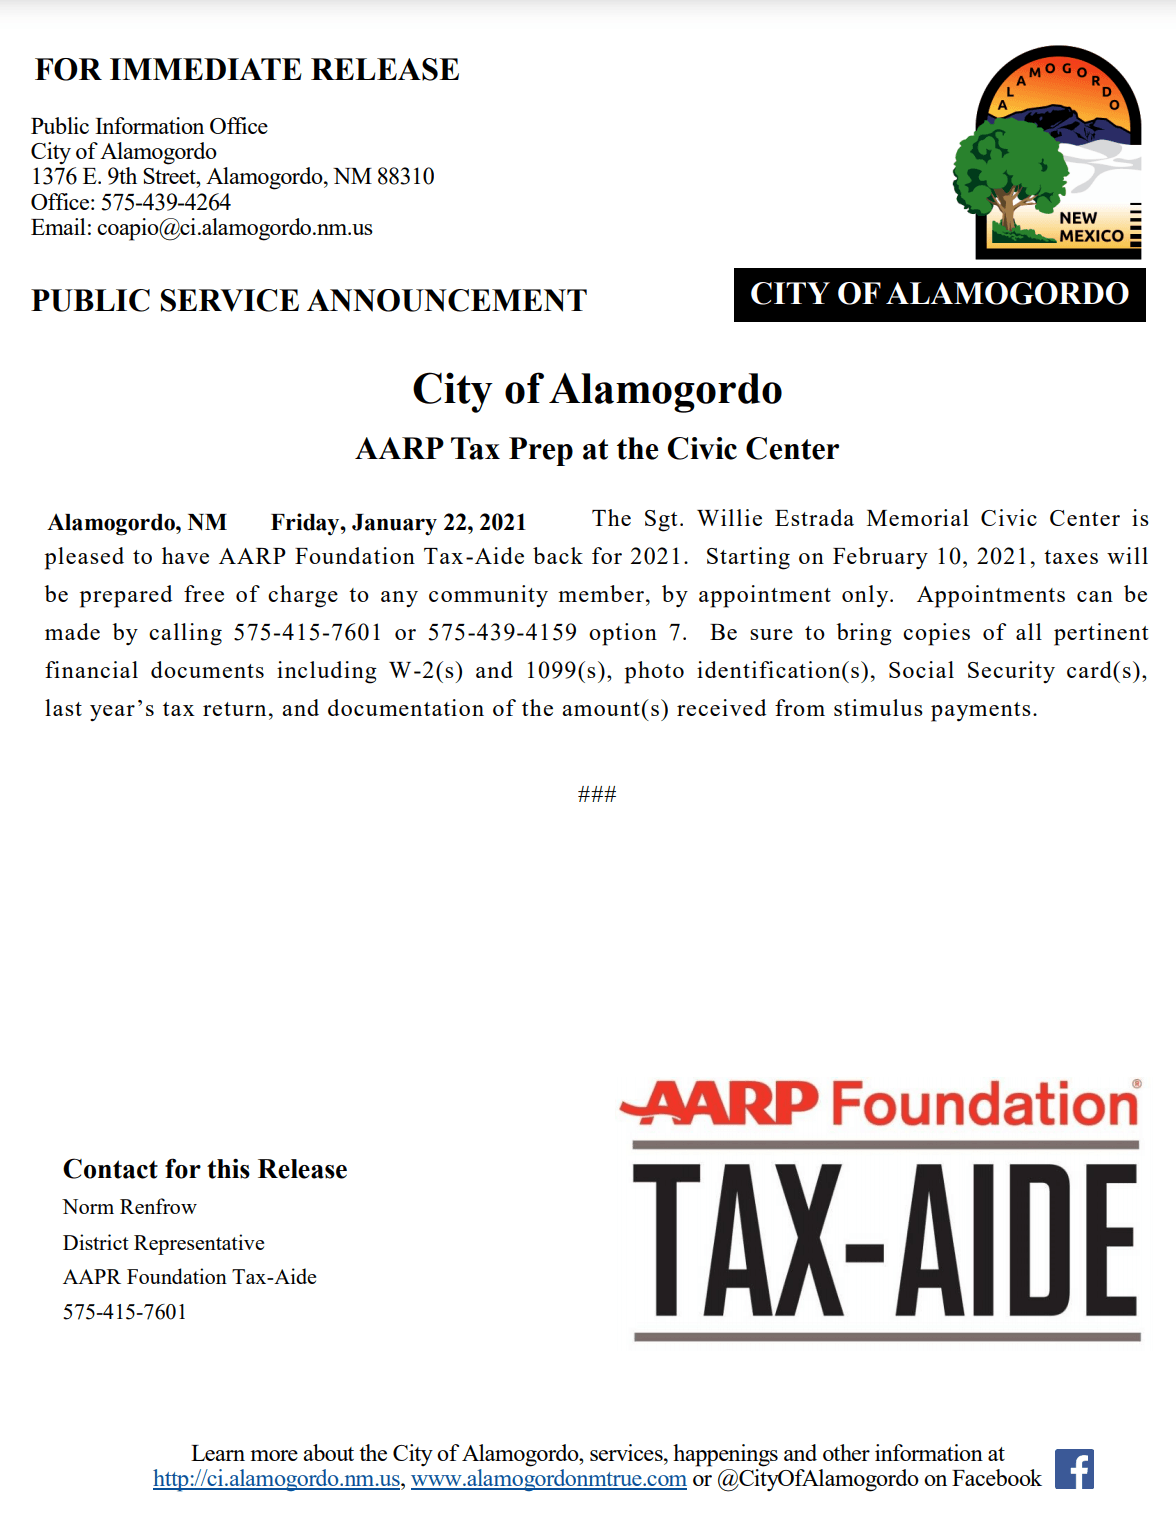 PSA - AARP Tax-Aide Program - Jan 2021